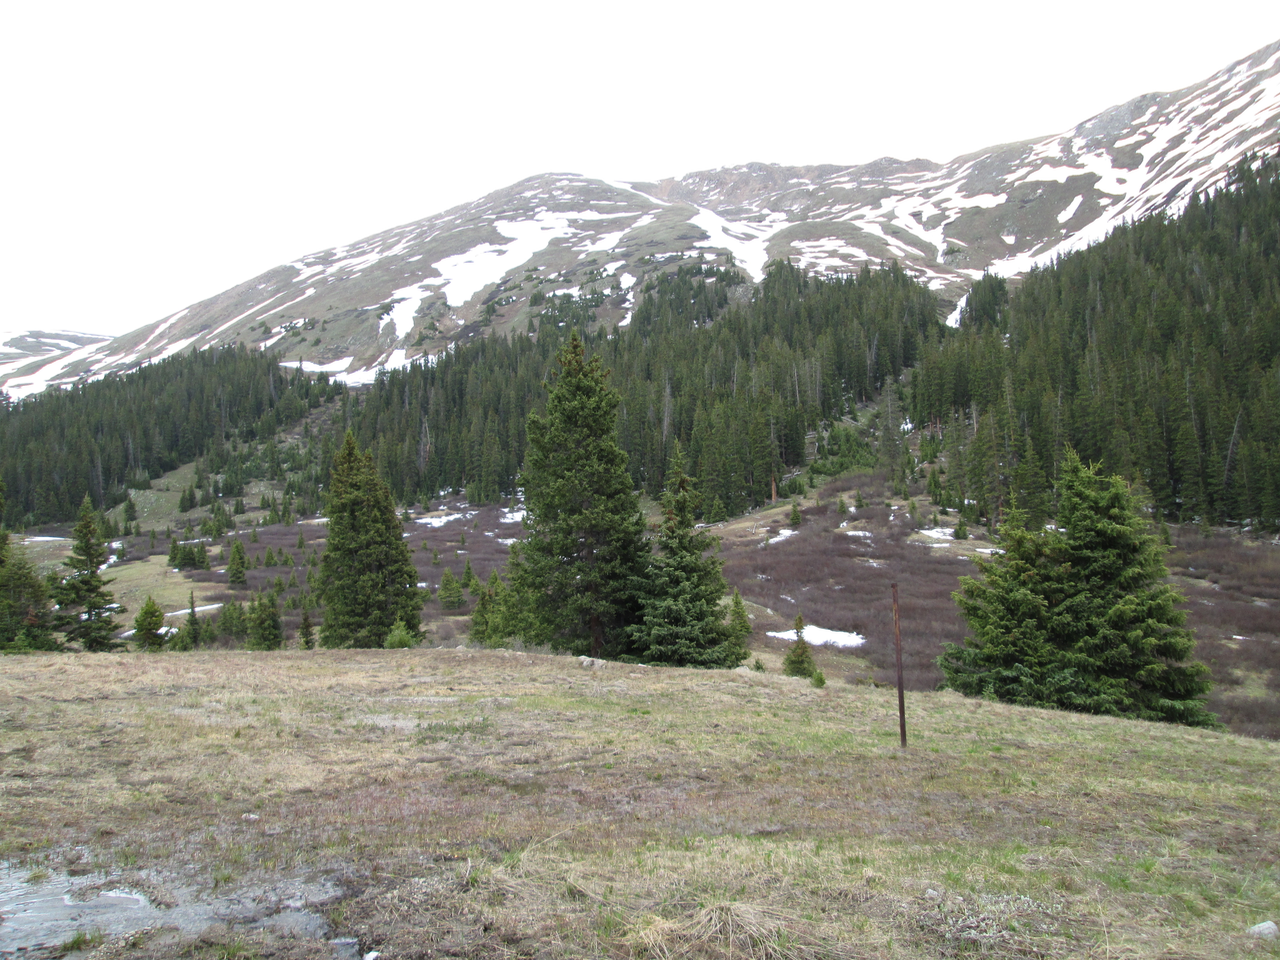 At Loveland Pass, on June 16, 2015 the CODOS Grizzly Peak snow profile site was complete snow-free.